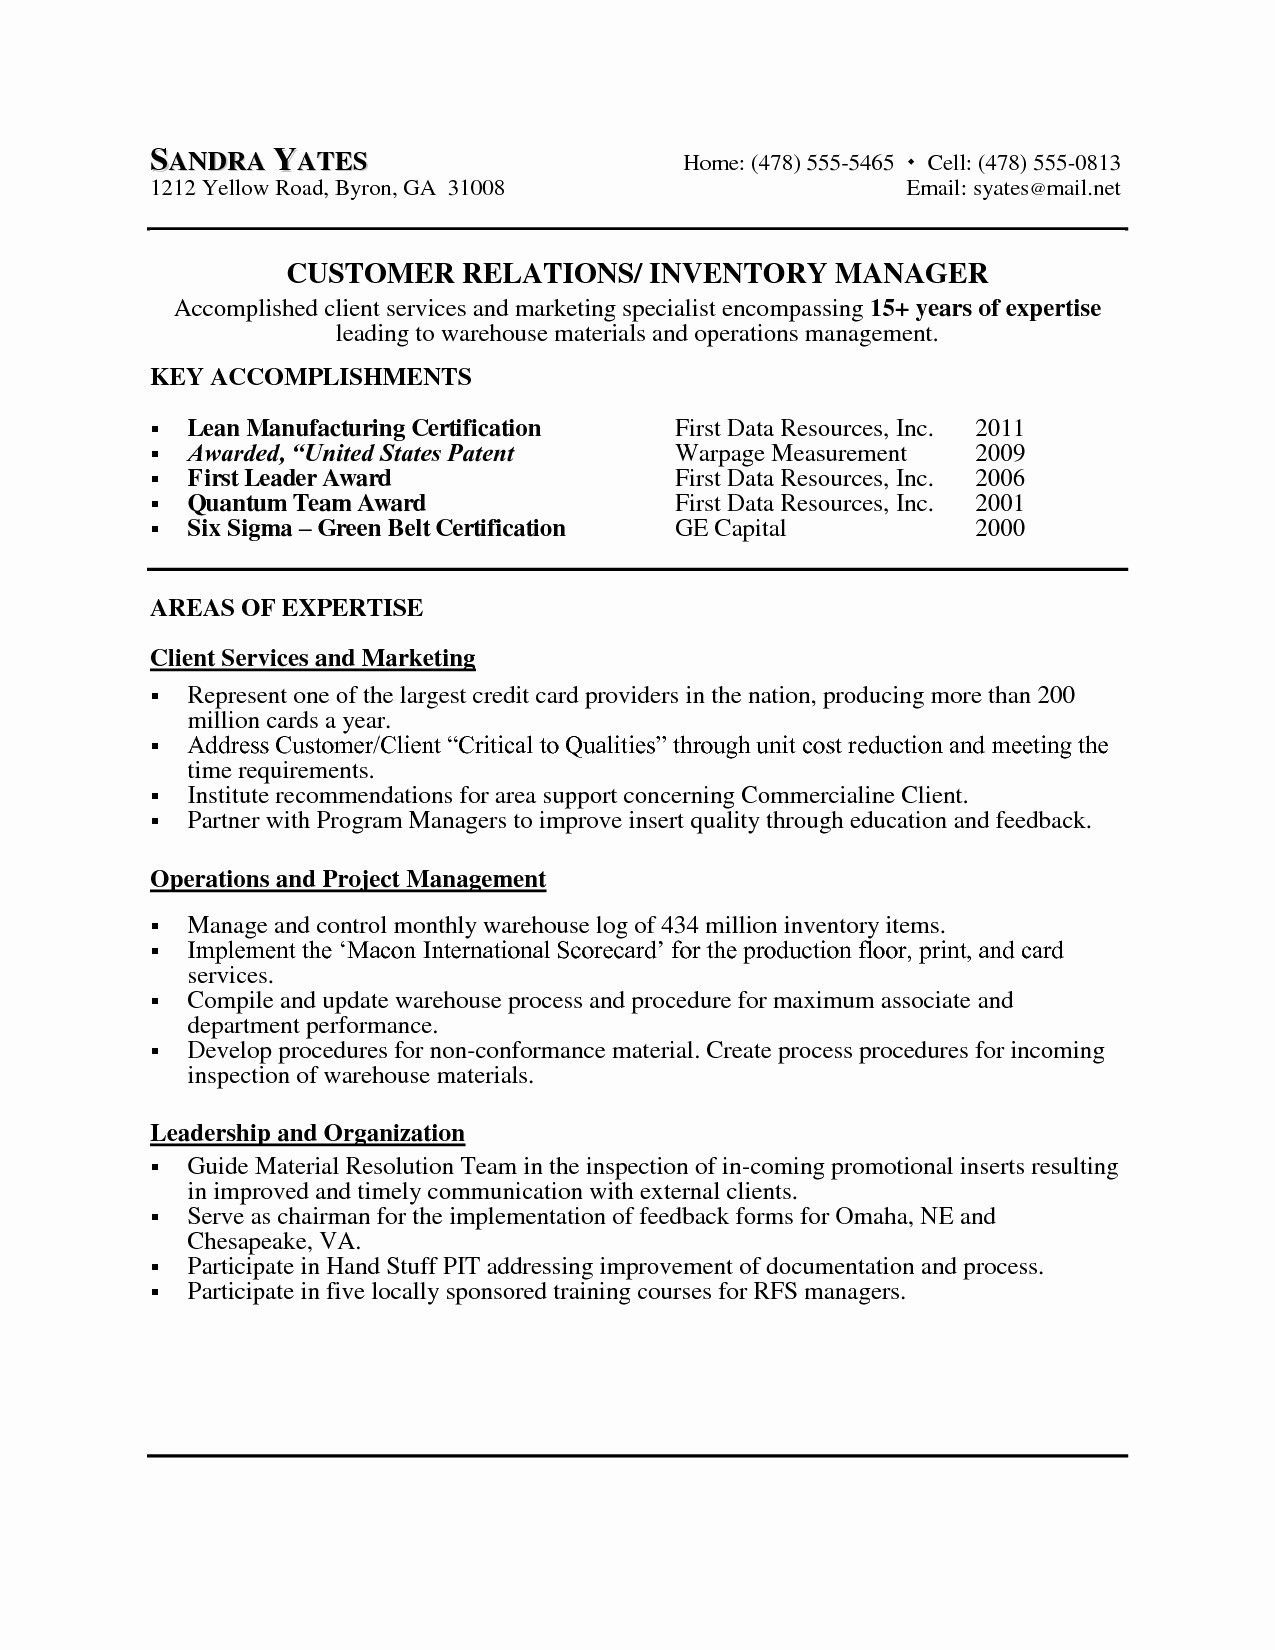 Hints for Good Resumes - Via Letter Best Law Student Resume Template Best Resume Examples